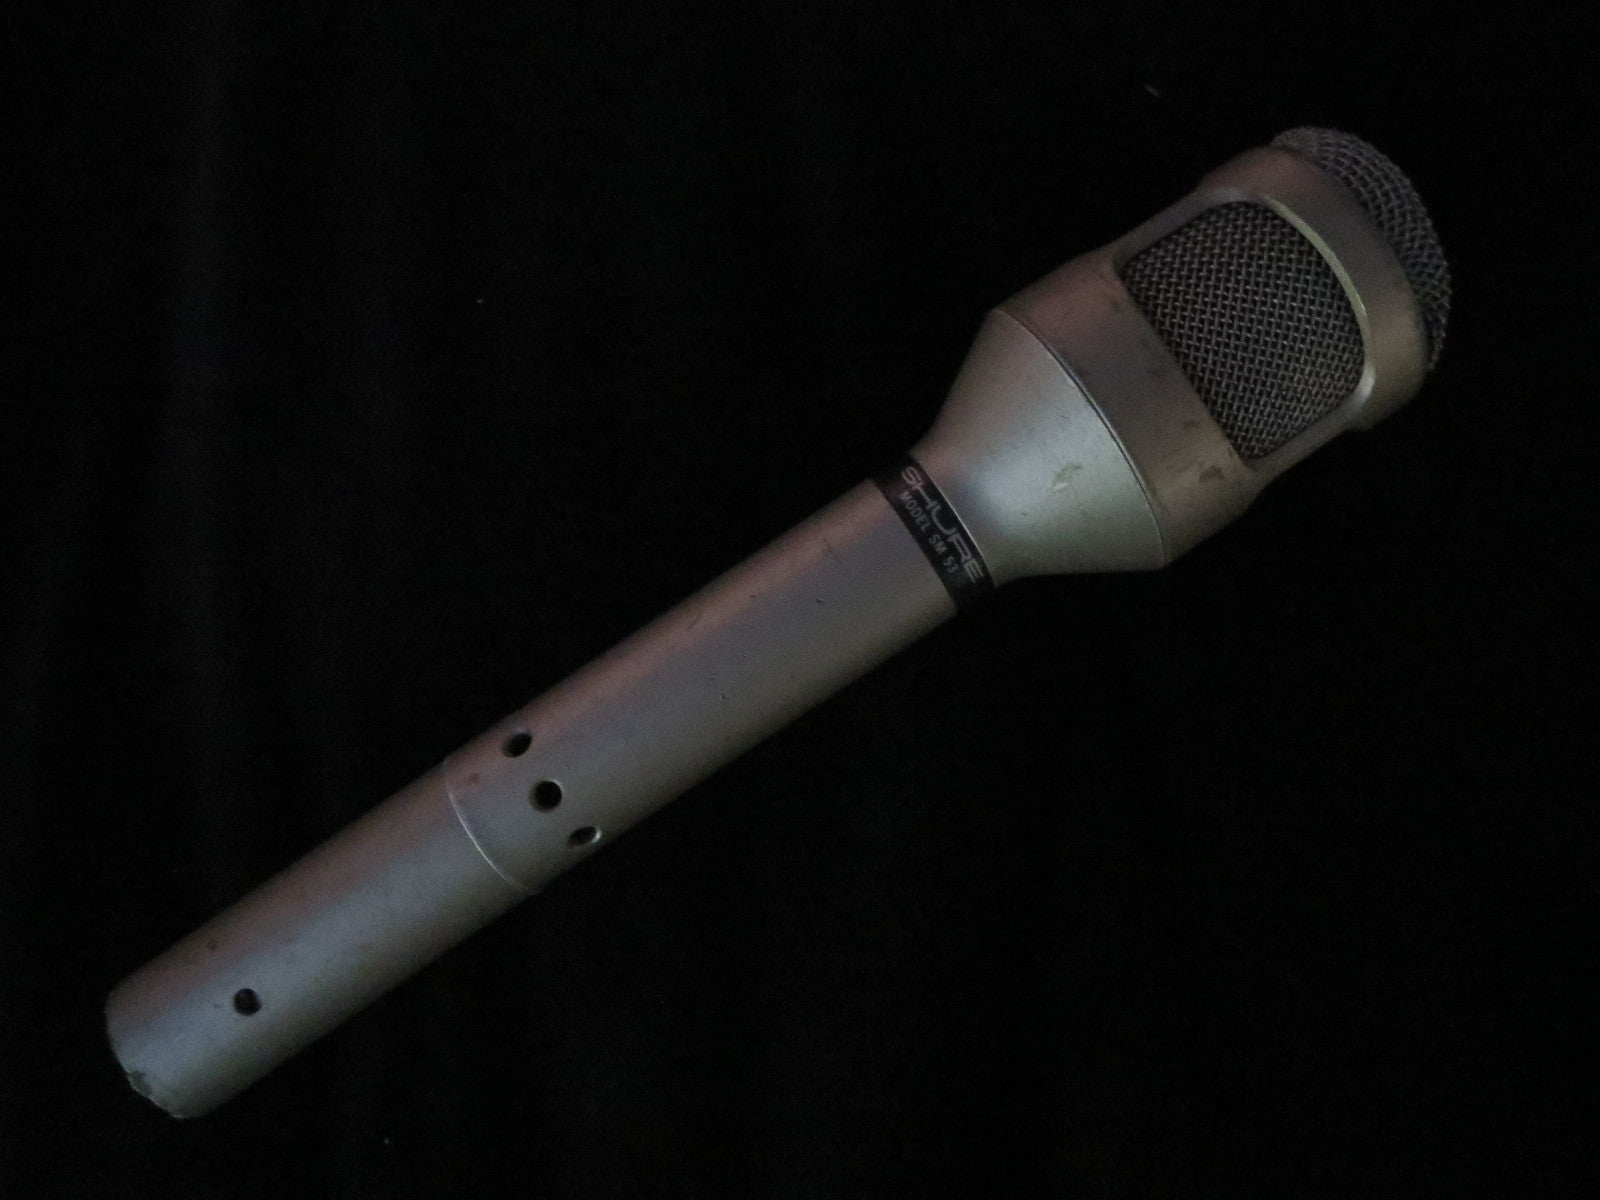 SHURE SM53 VINTAGE DYNAMIC CARDIOID MICROPHONE WITH XLR CONNECTOR, BASS ROLL-OFF